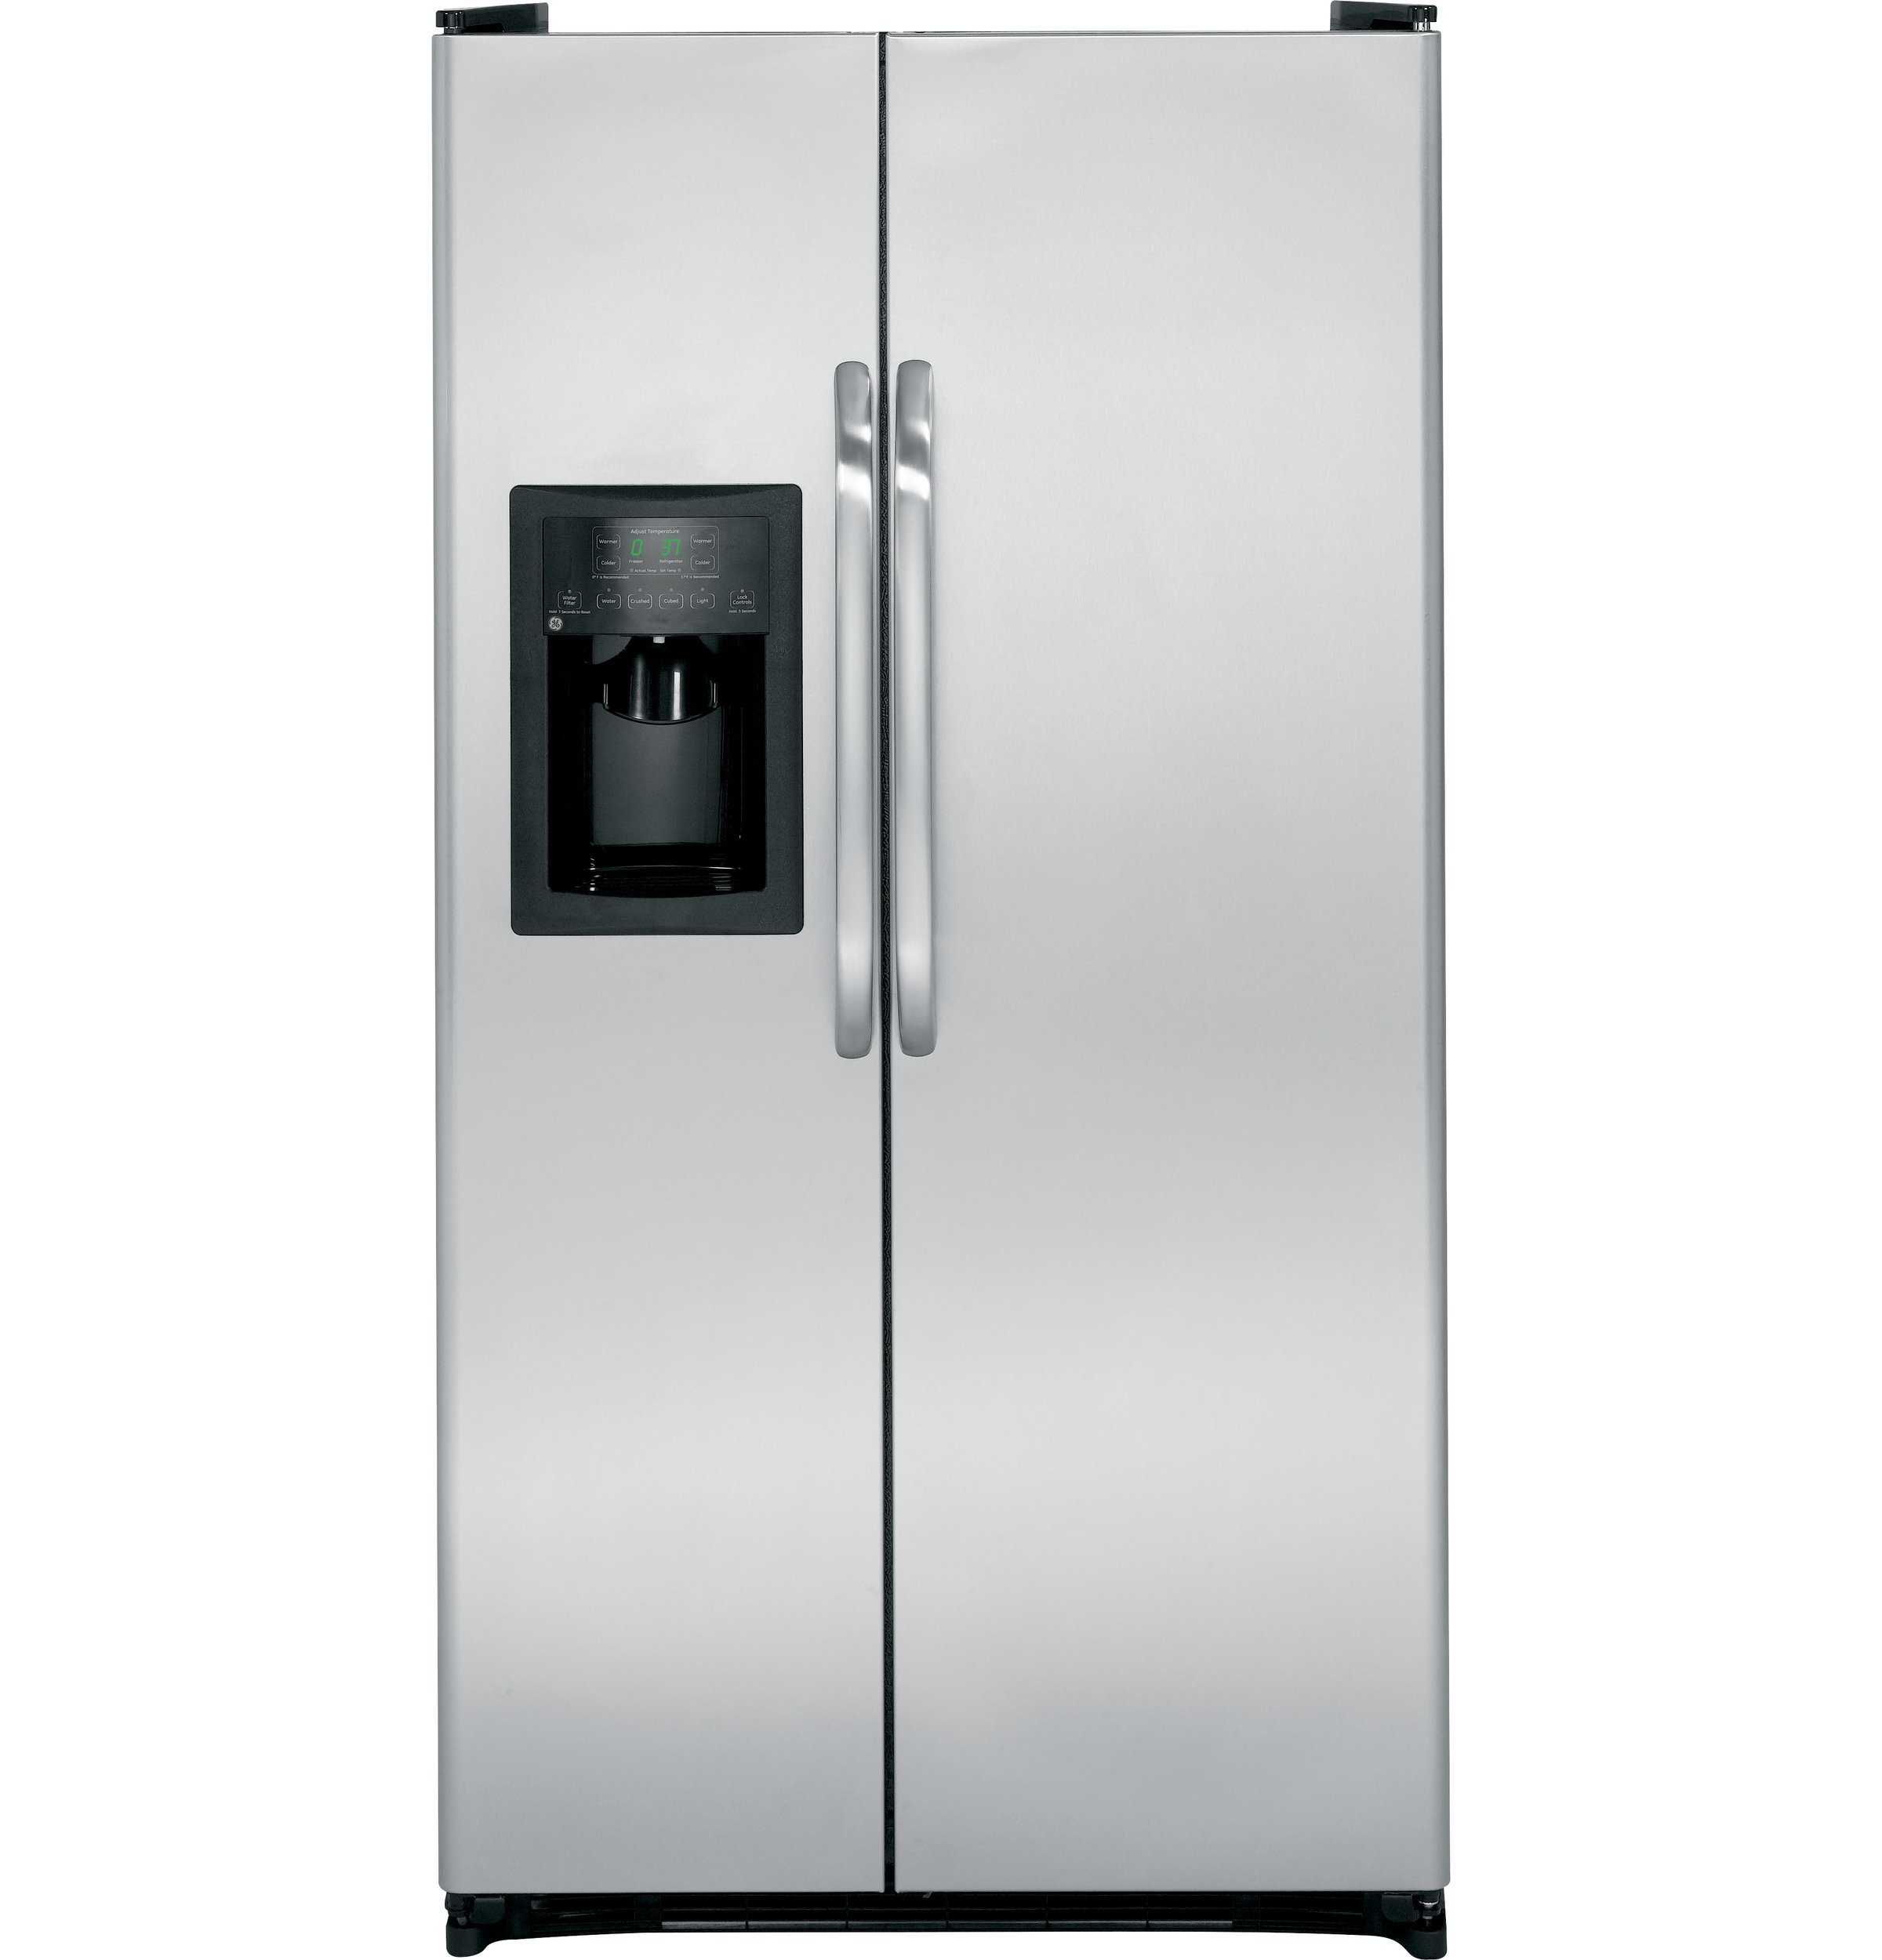 Ge 253 cu ft side by side refrigerator gsh25jsdss ge appliances product image publicscrutiny Gallery